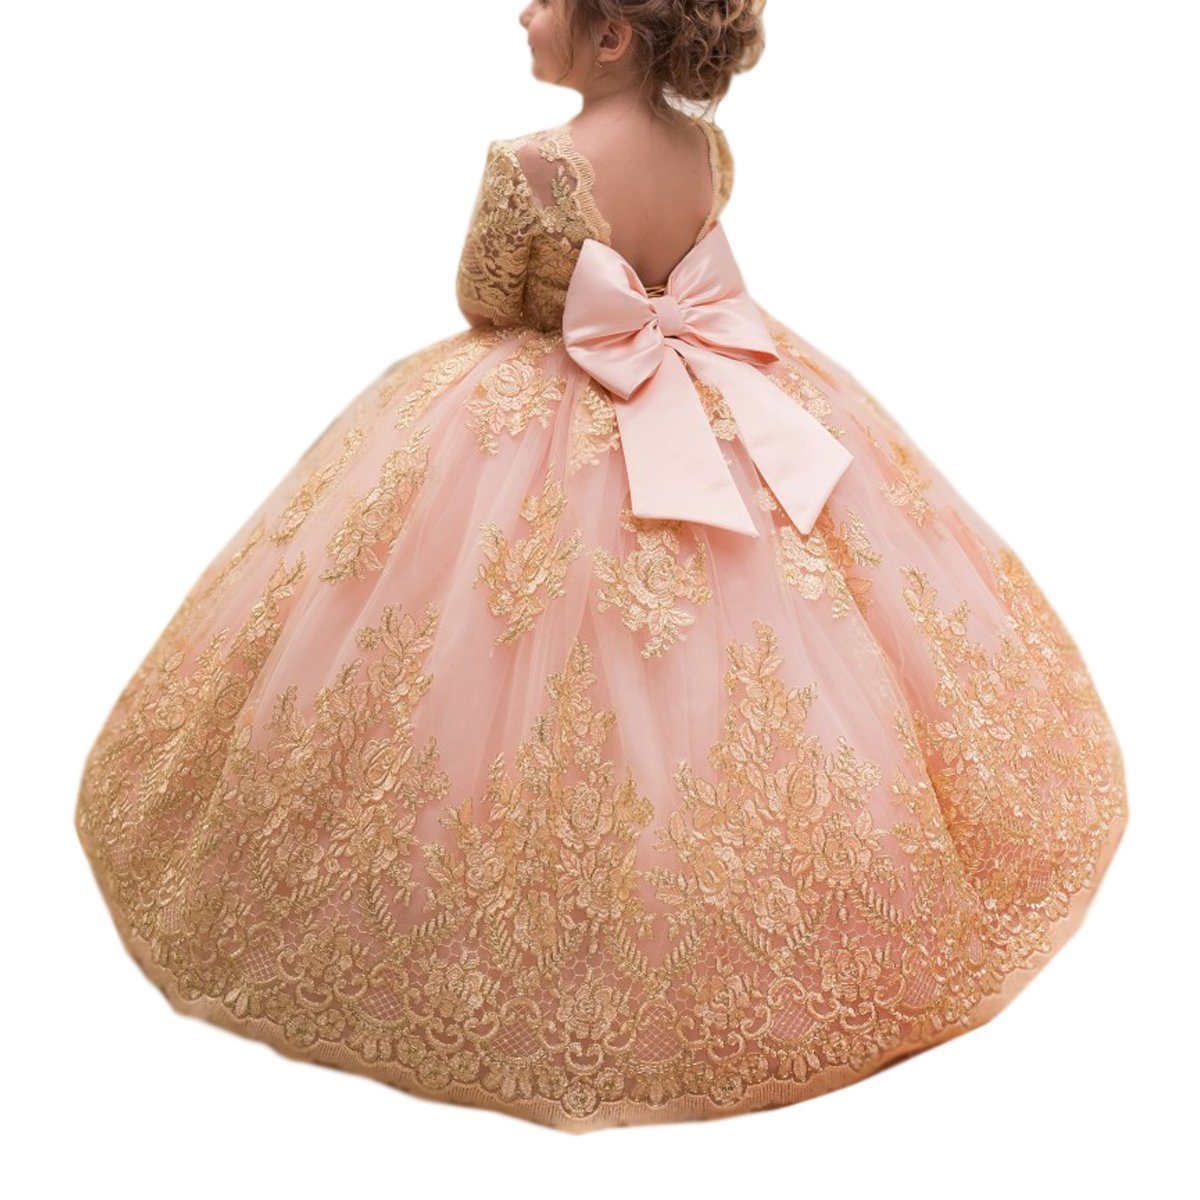 cbef13e77735a Amazon.com  SHENLINQIJ Lace Half Sleeve Pink Flower Girl Dresses Gold Ball  Gowns For Special Occasions  Clothing